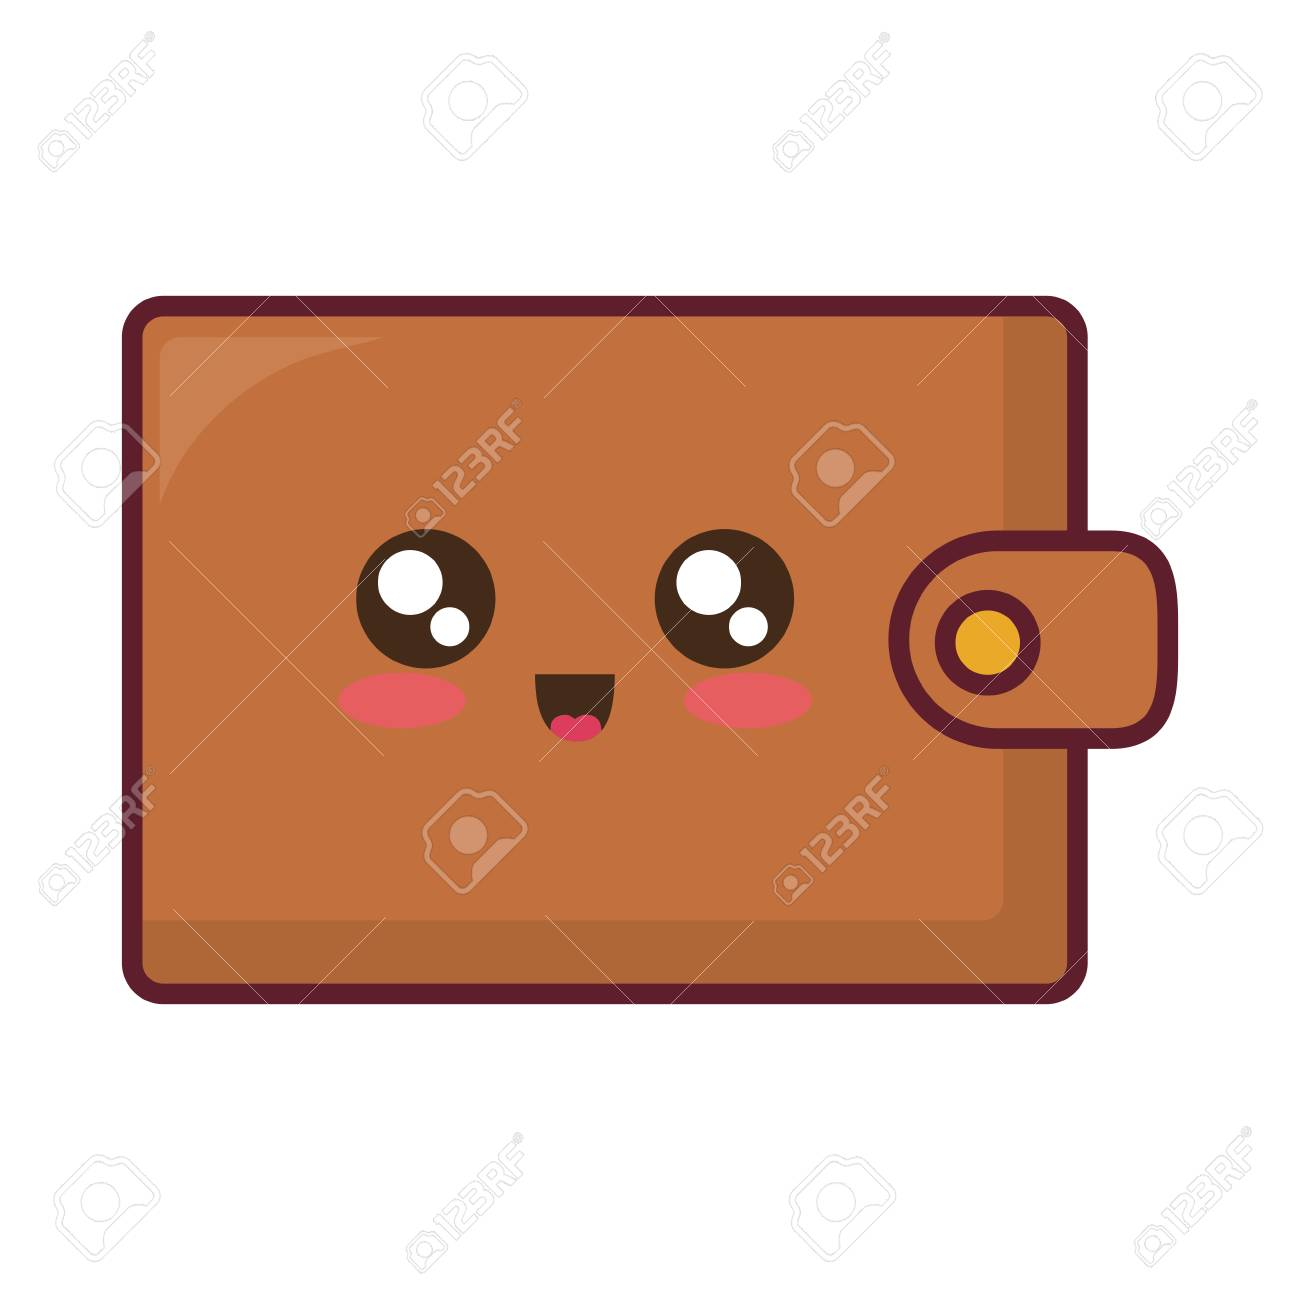 cute wallet accessory icon over white background colorful design royalty free cliparts vectors and stock illustration image 96984289 cute wallet accessory icon over white background colorful design